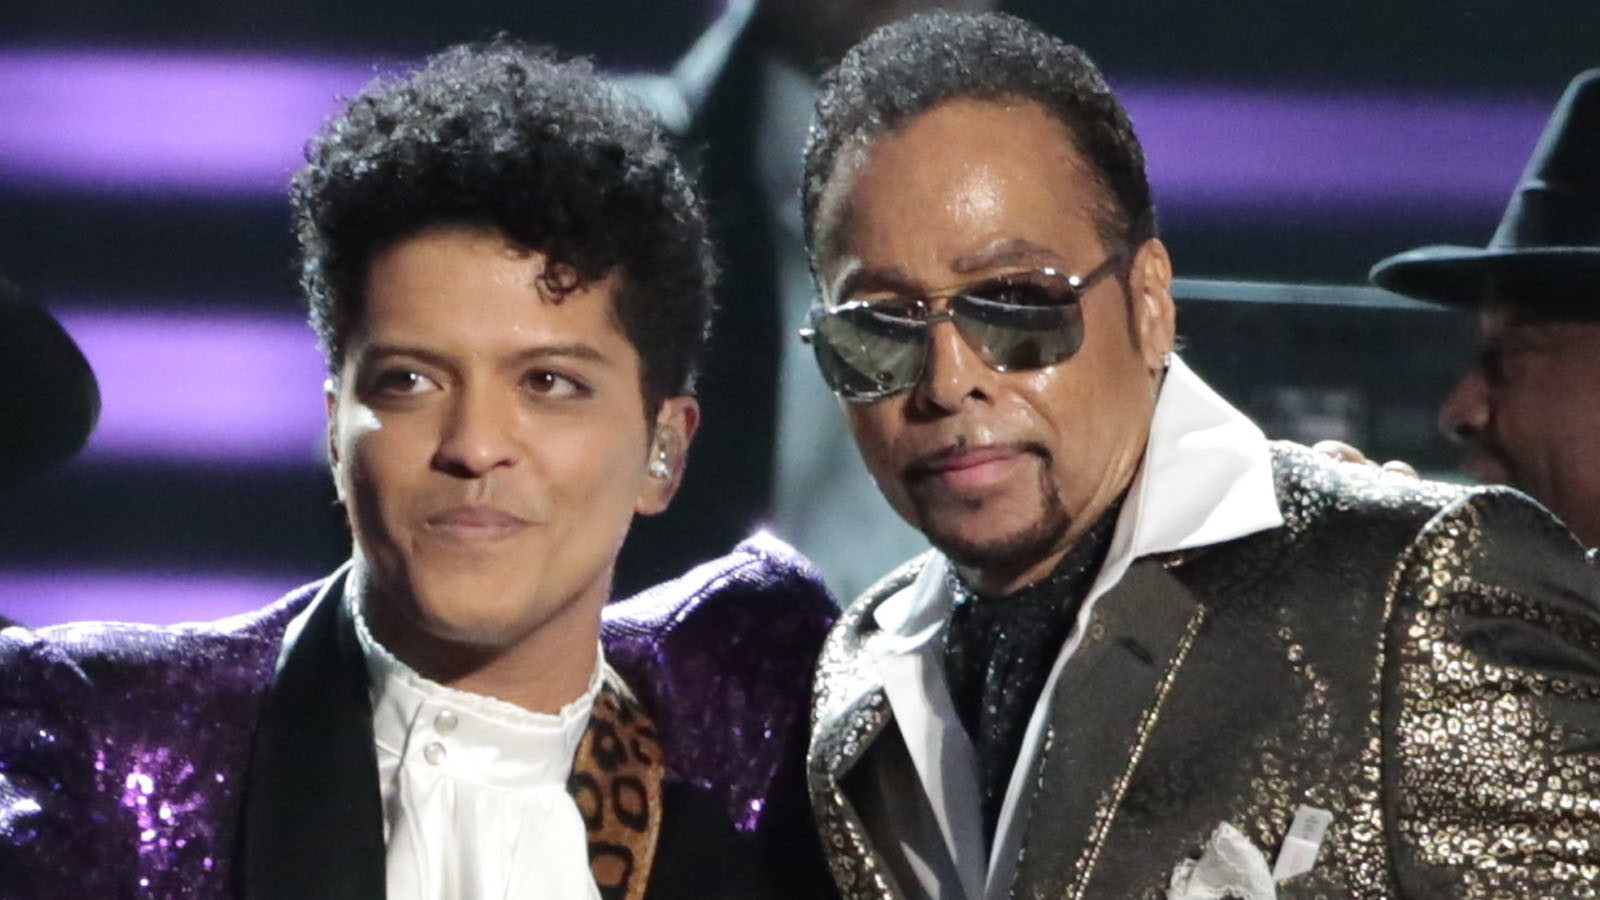 Bruno Mars, left, and Morris Day after the Grammy Awards' tribute to Prince. (Robert Gauthier / Los Angeles Times)